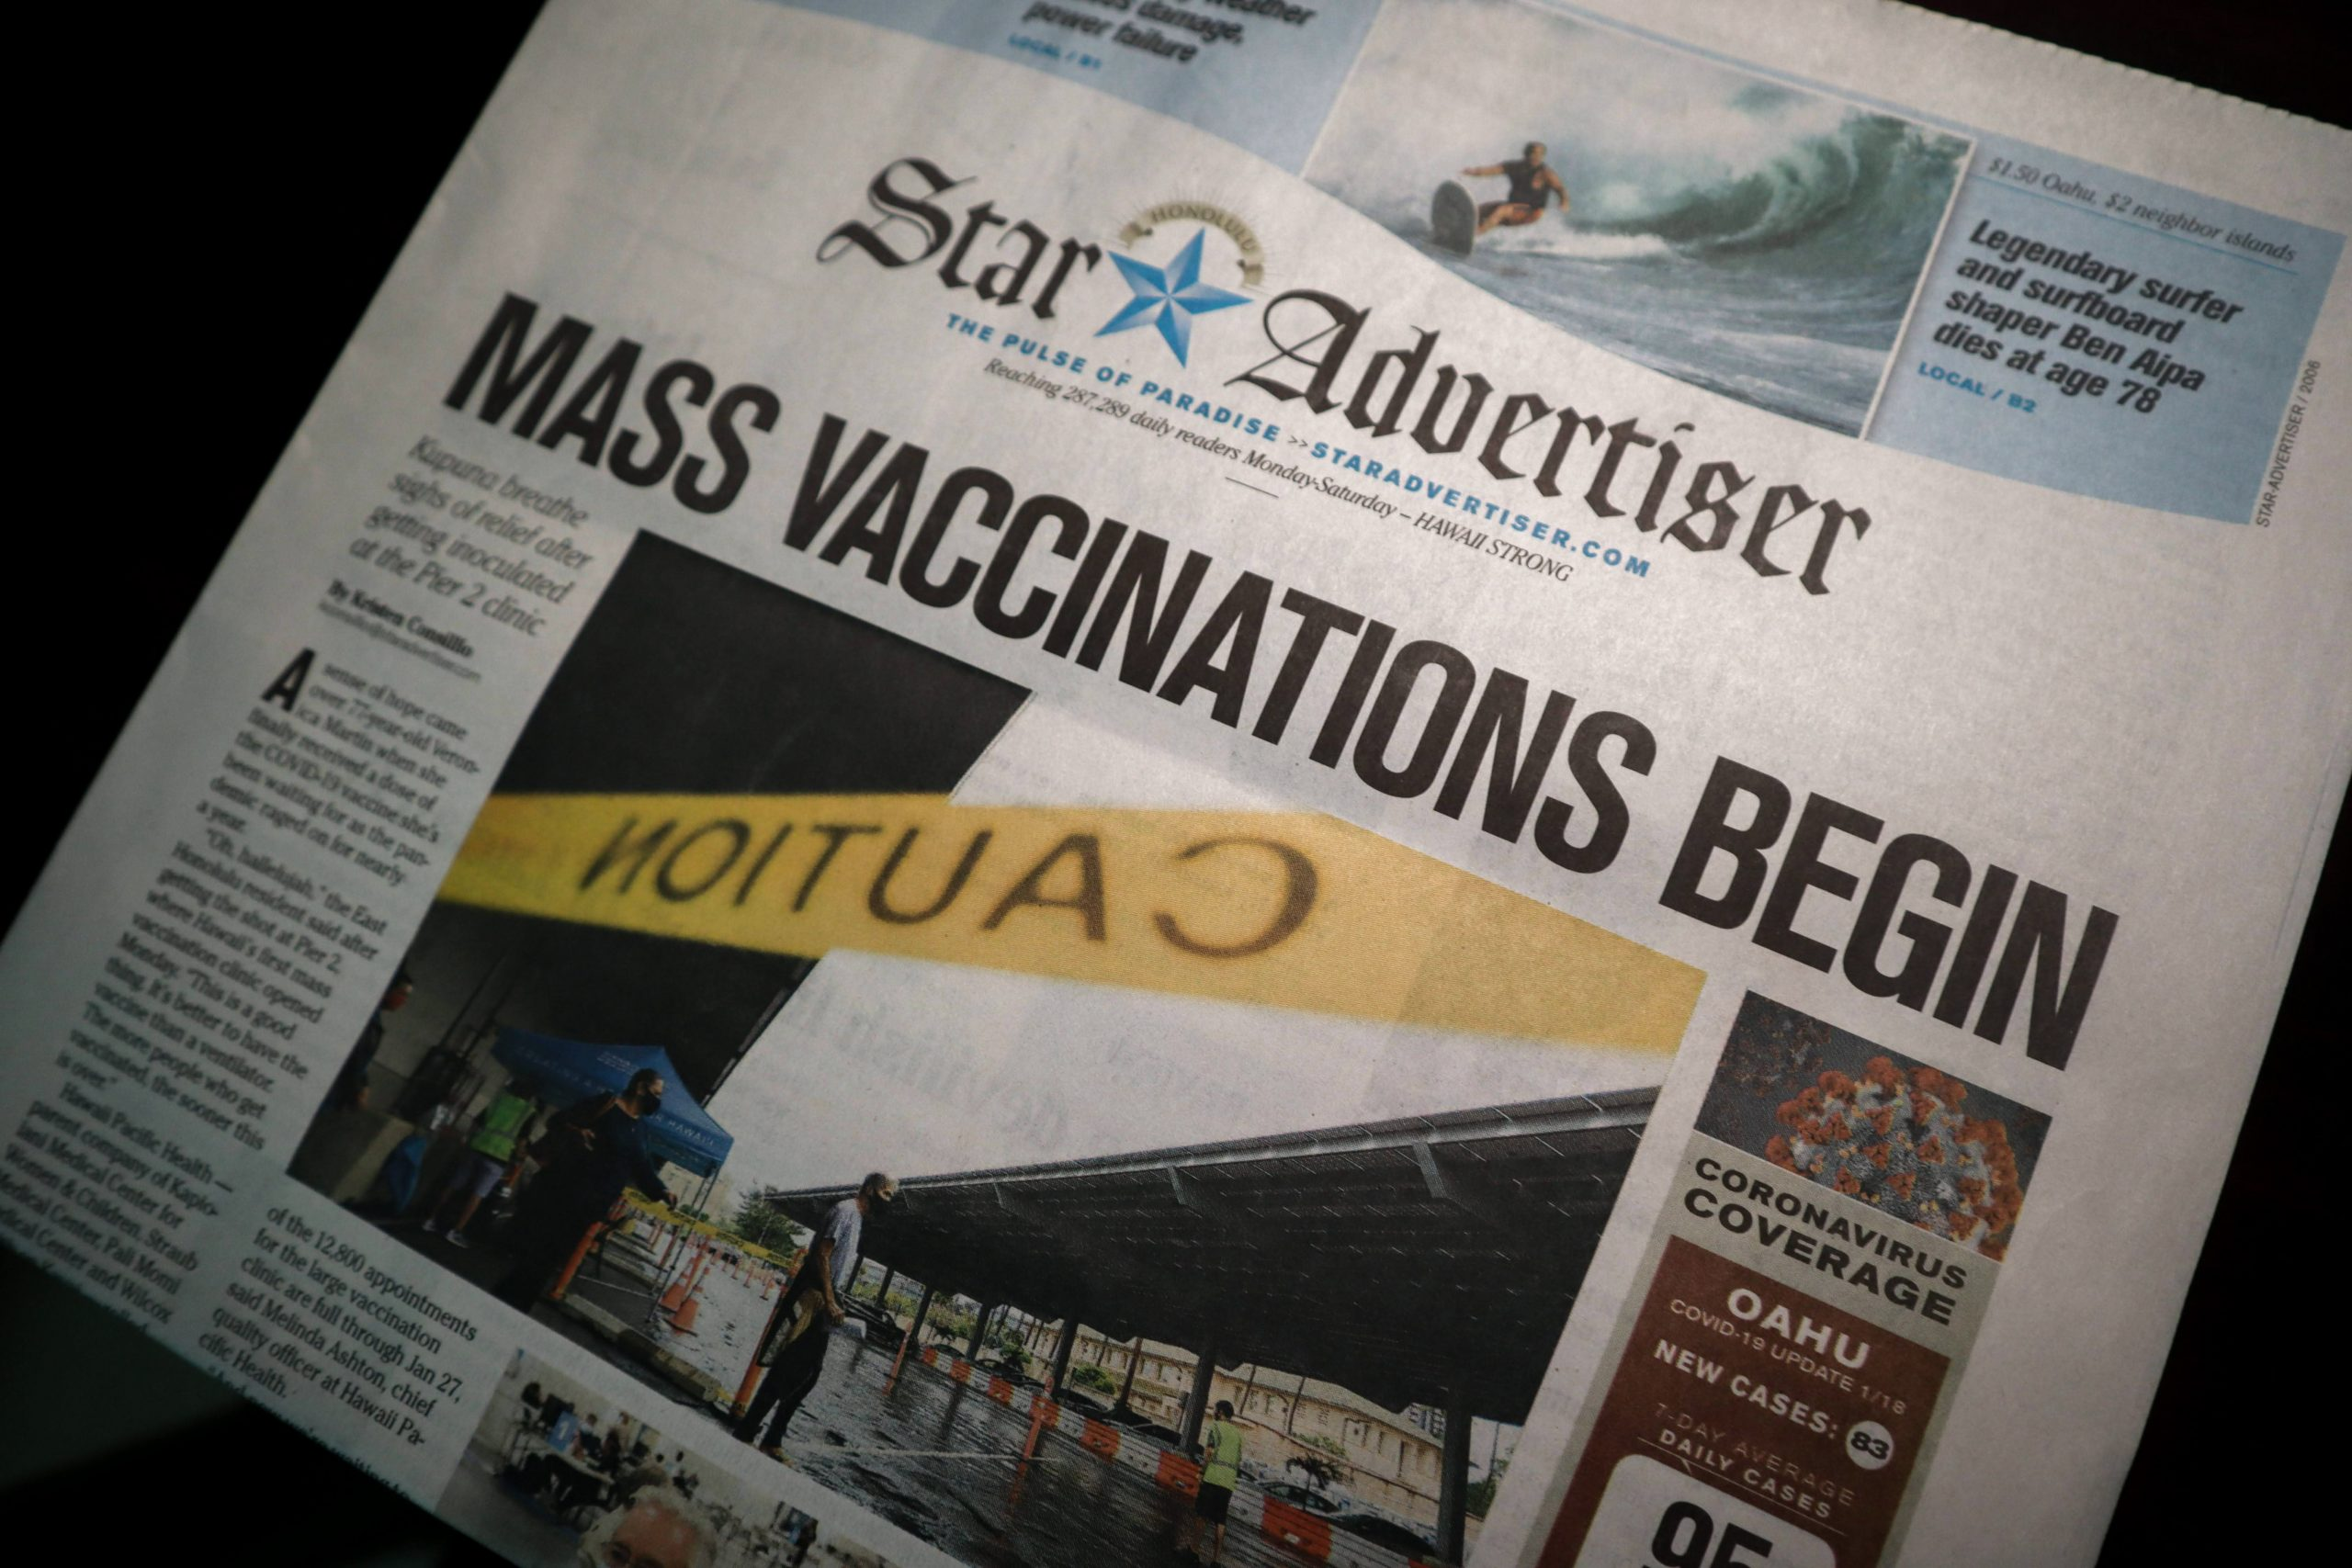 News story vaccinations begin